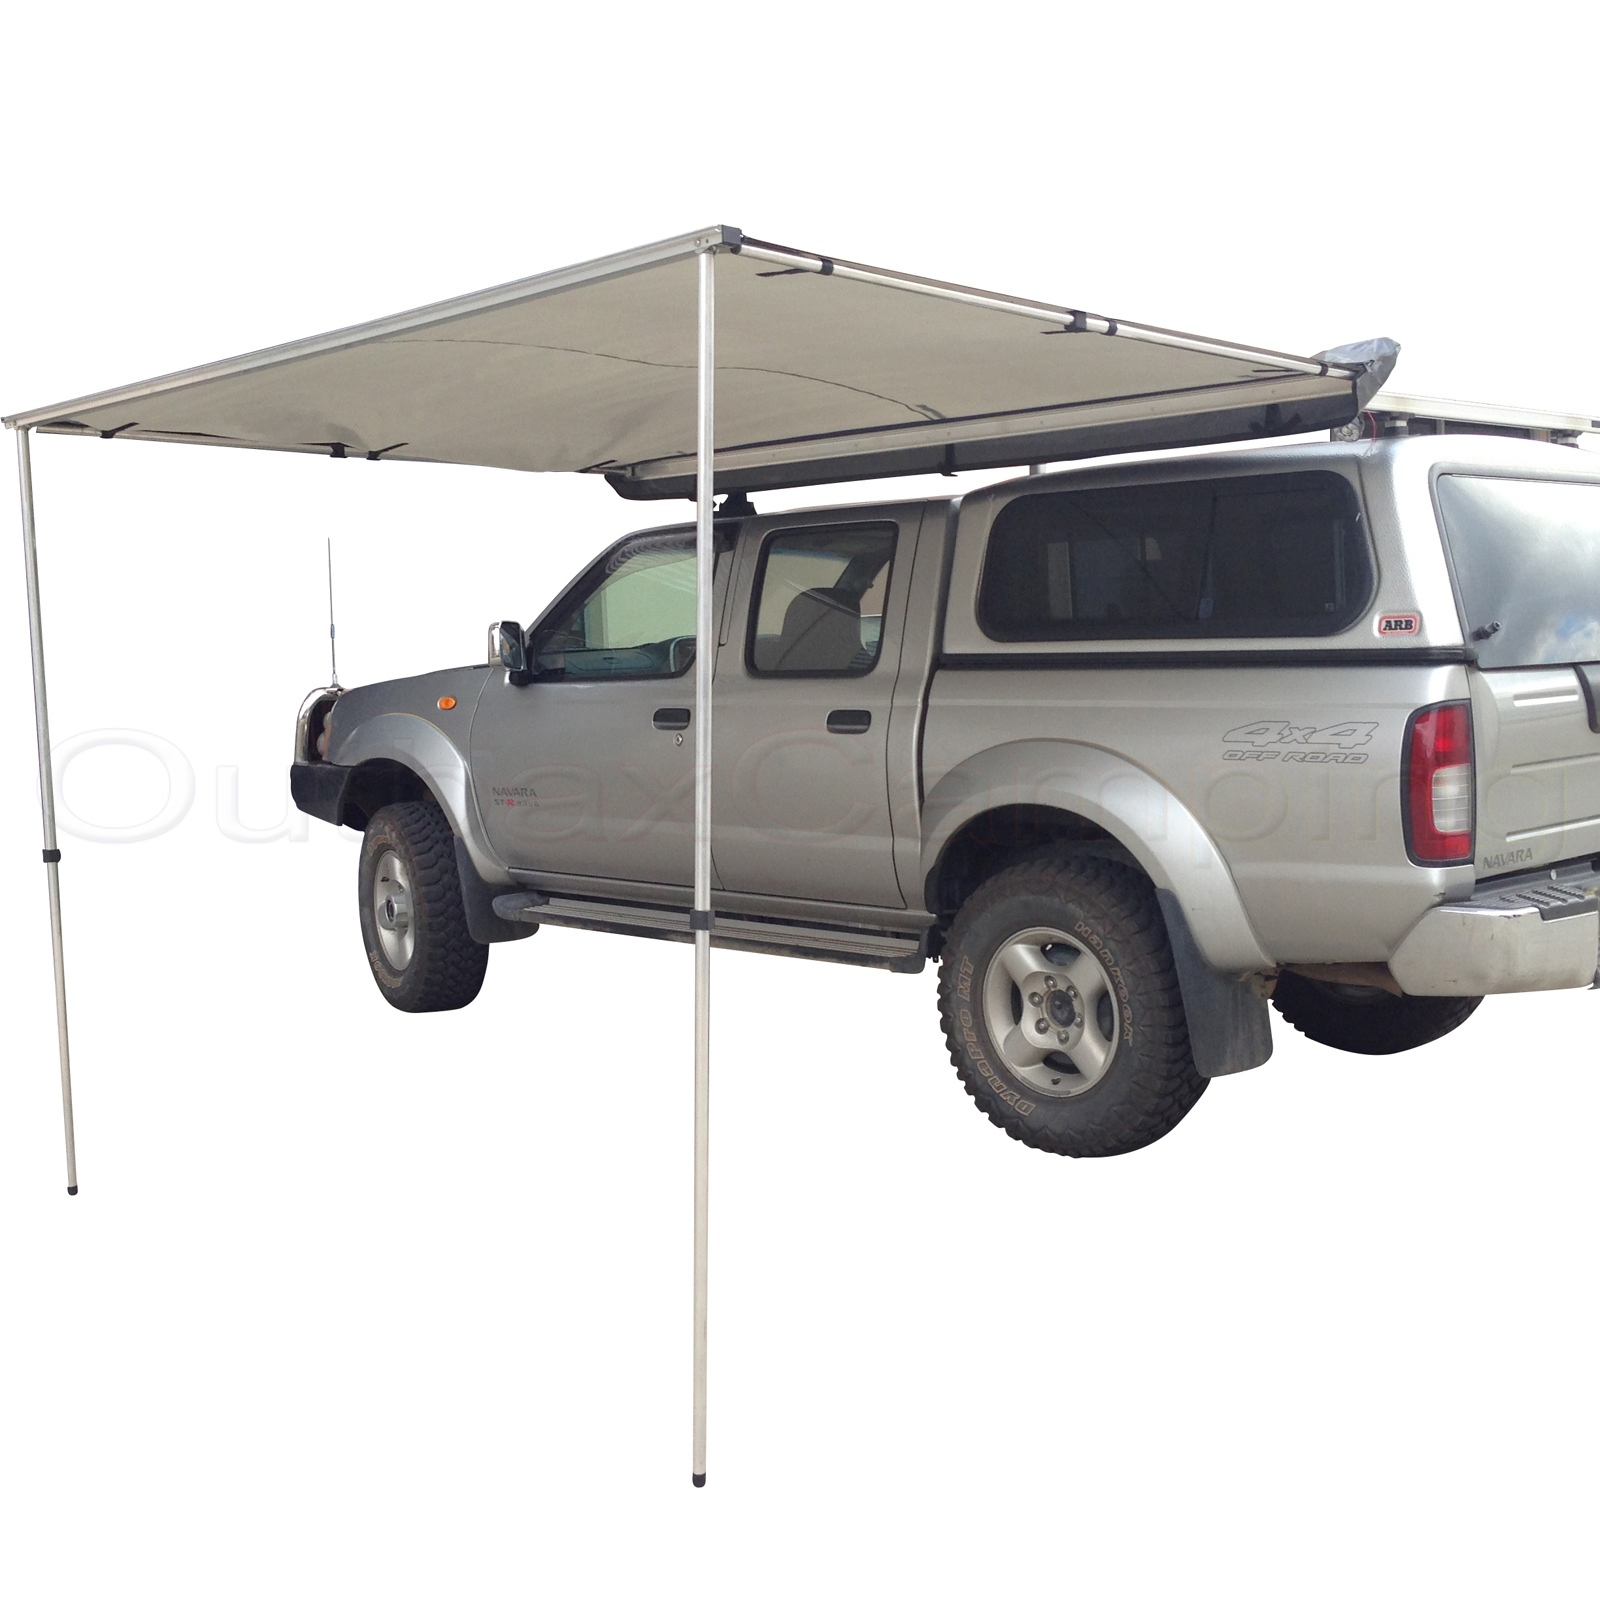 2.5M AWNING ROOF TOP TENT CAMPER TRAILER 4WD 4X4 SIDE CAMPING CAR RACK Pull Out